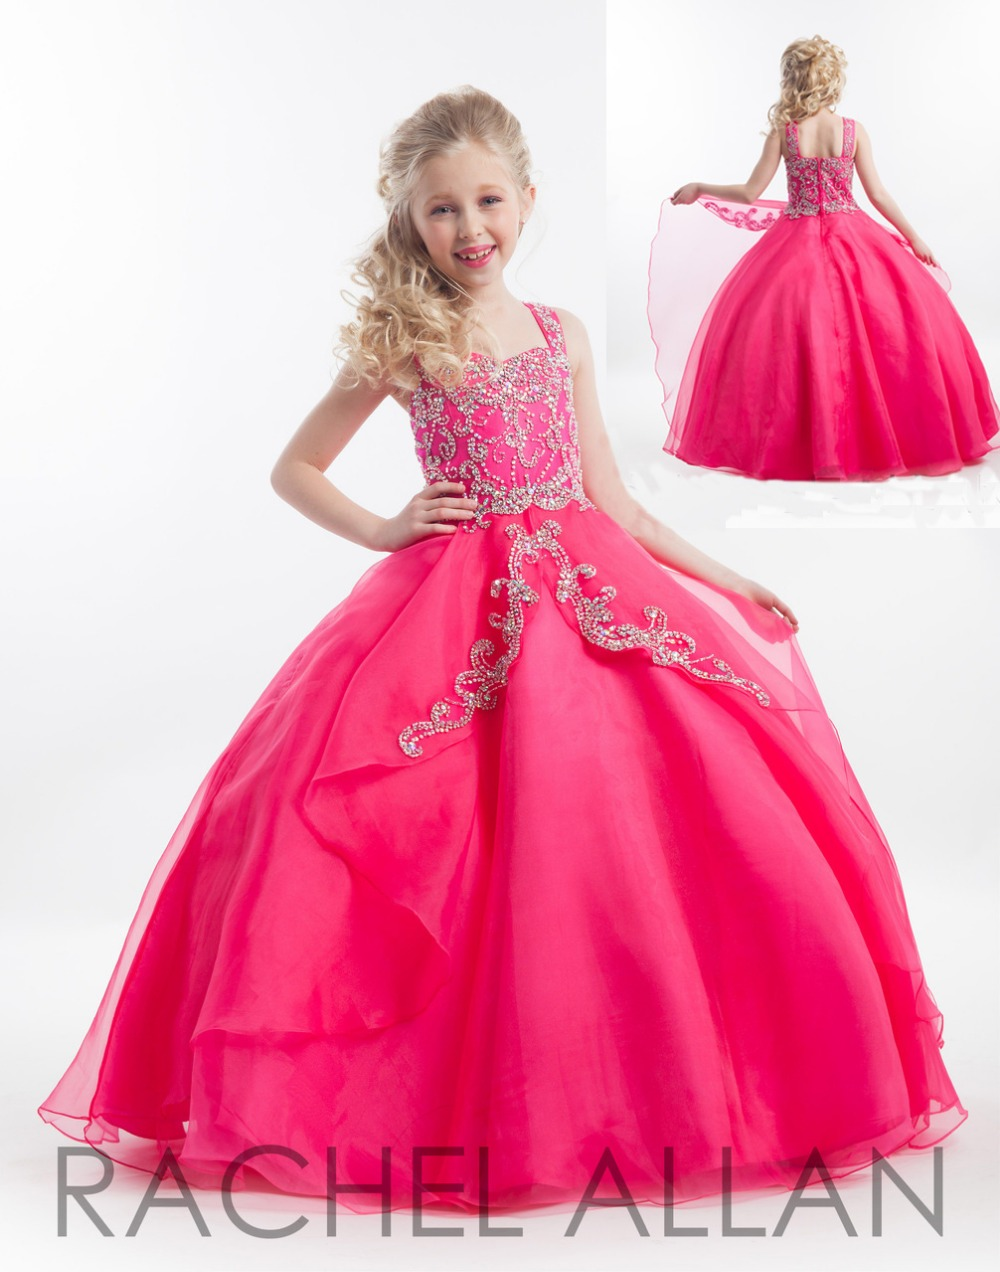 Bridesmaid dresses childrens uk wedding dresses asian for Wedding dresses for child